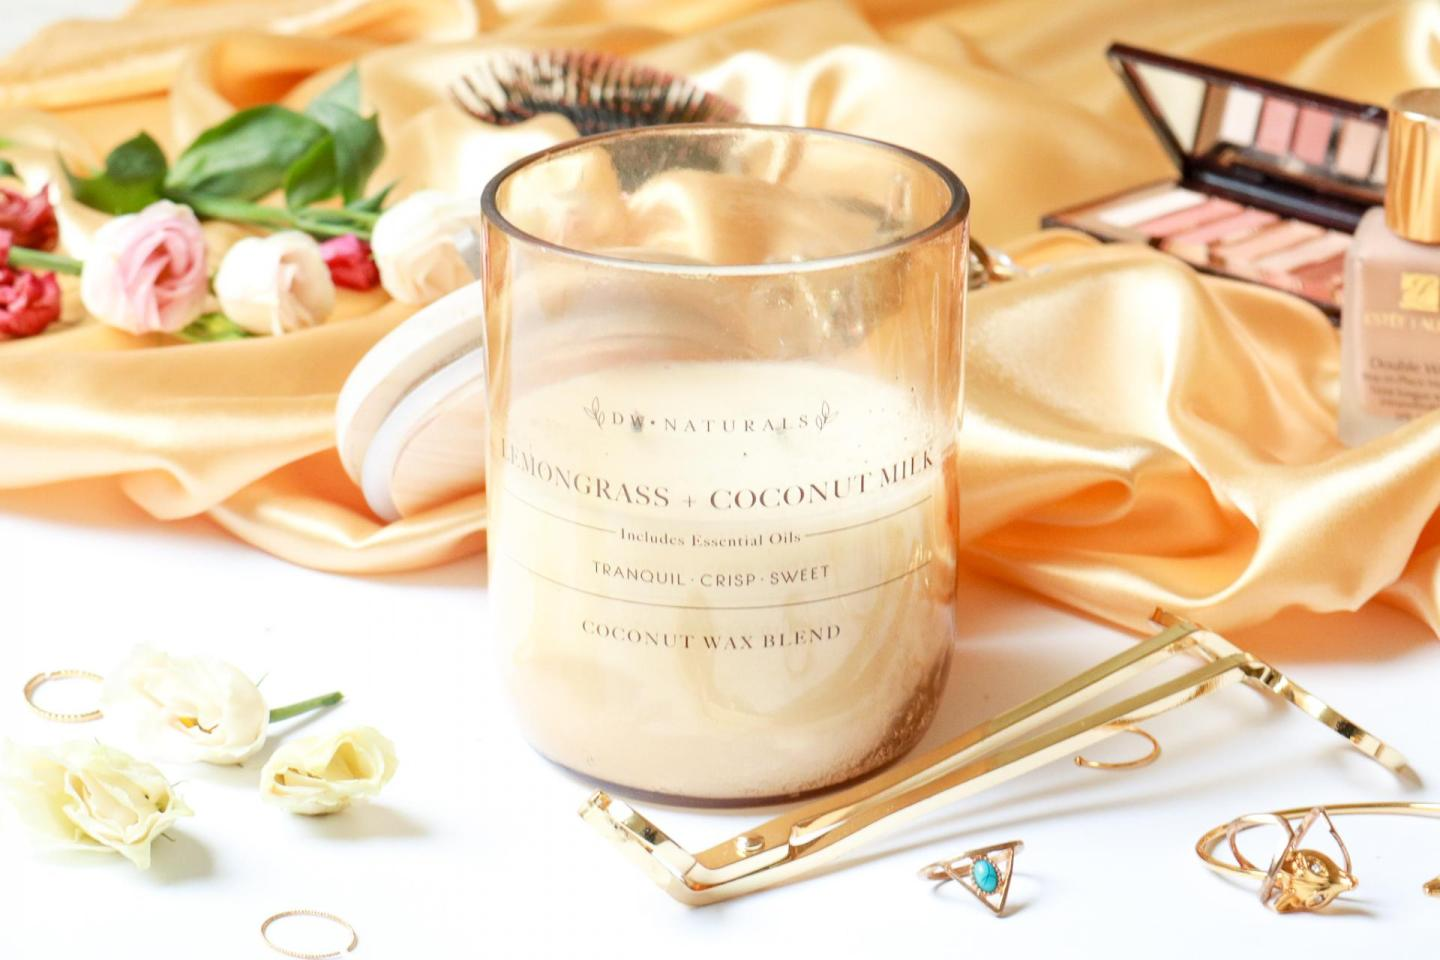 Lemon Grass and Coconut Milk Scented Candle by DW Home